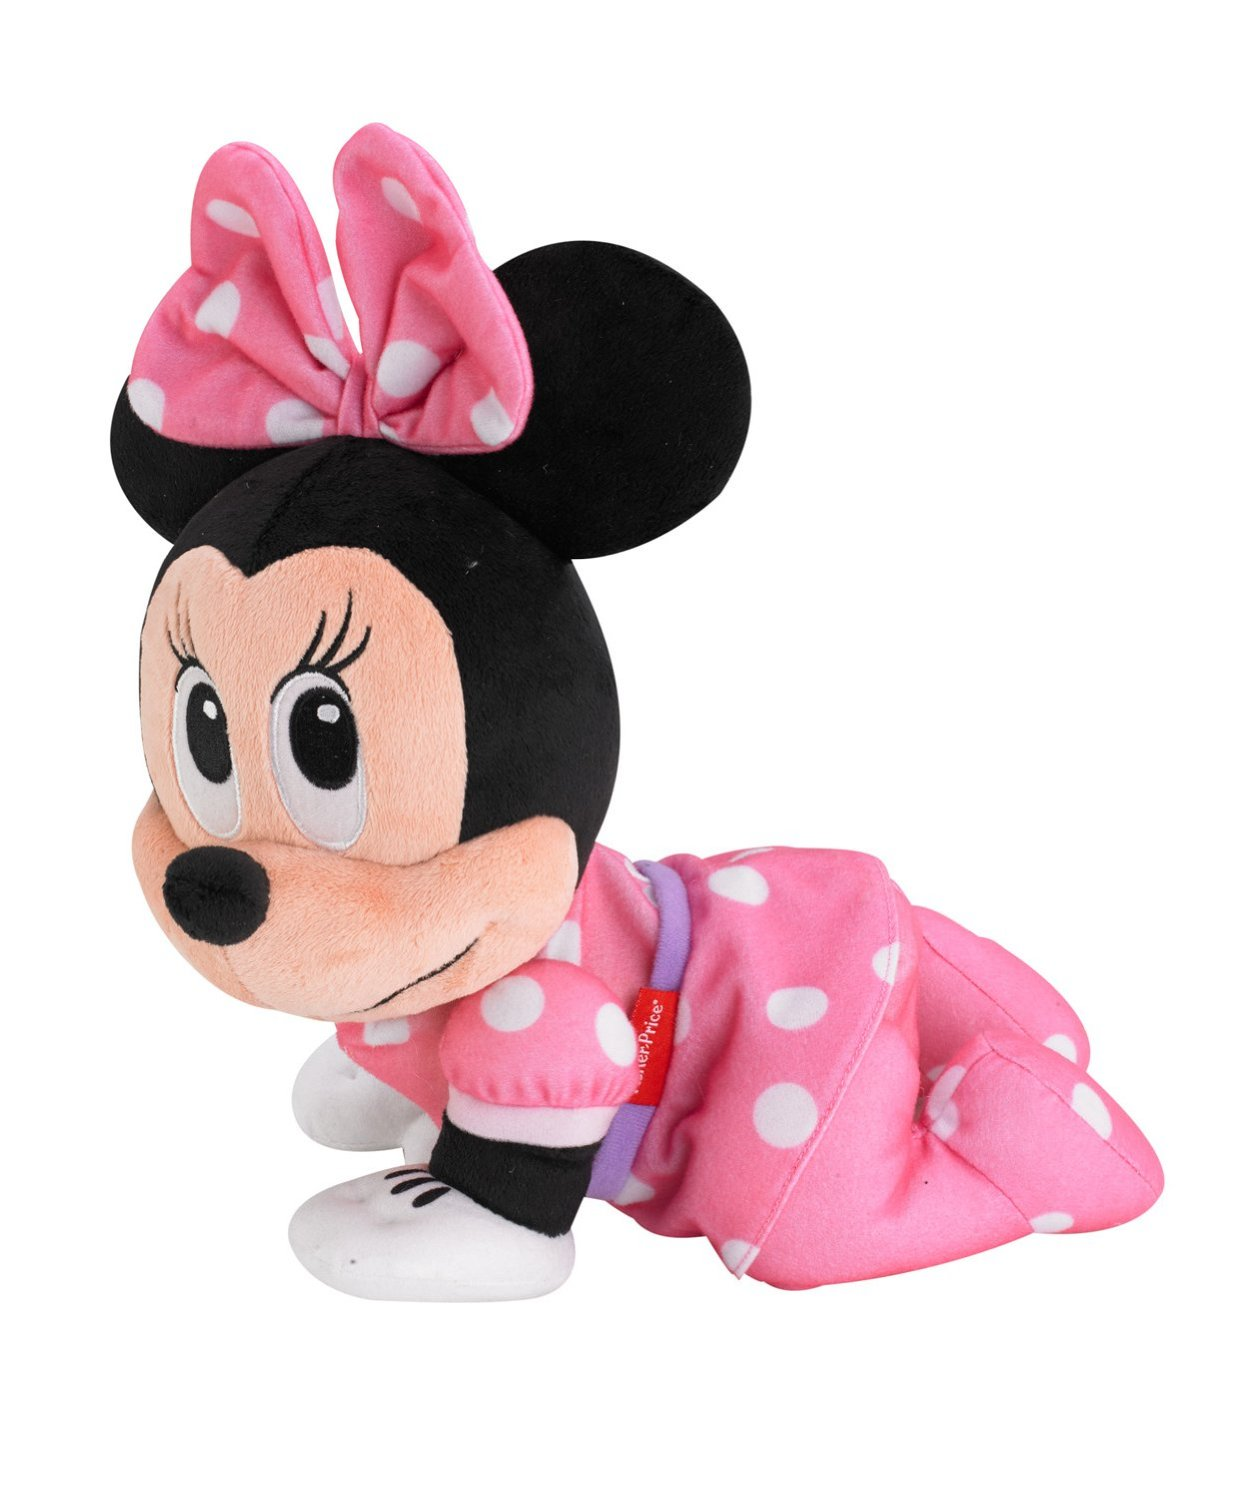 Minnie Mouse Touch and Crawl for babies